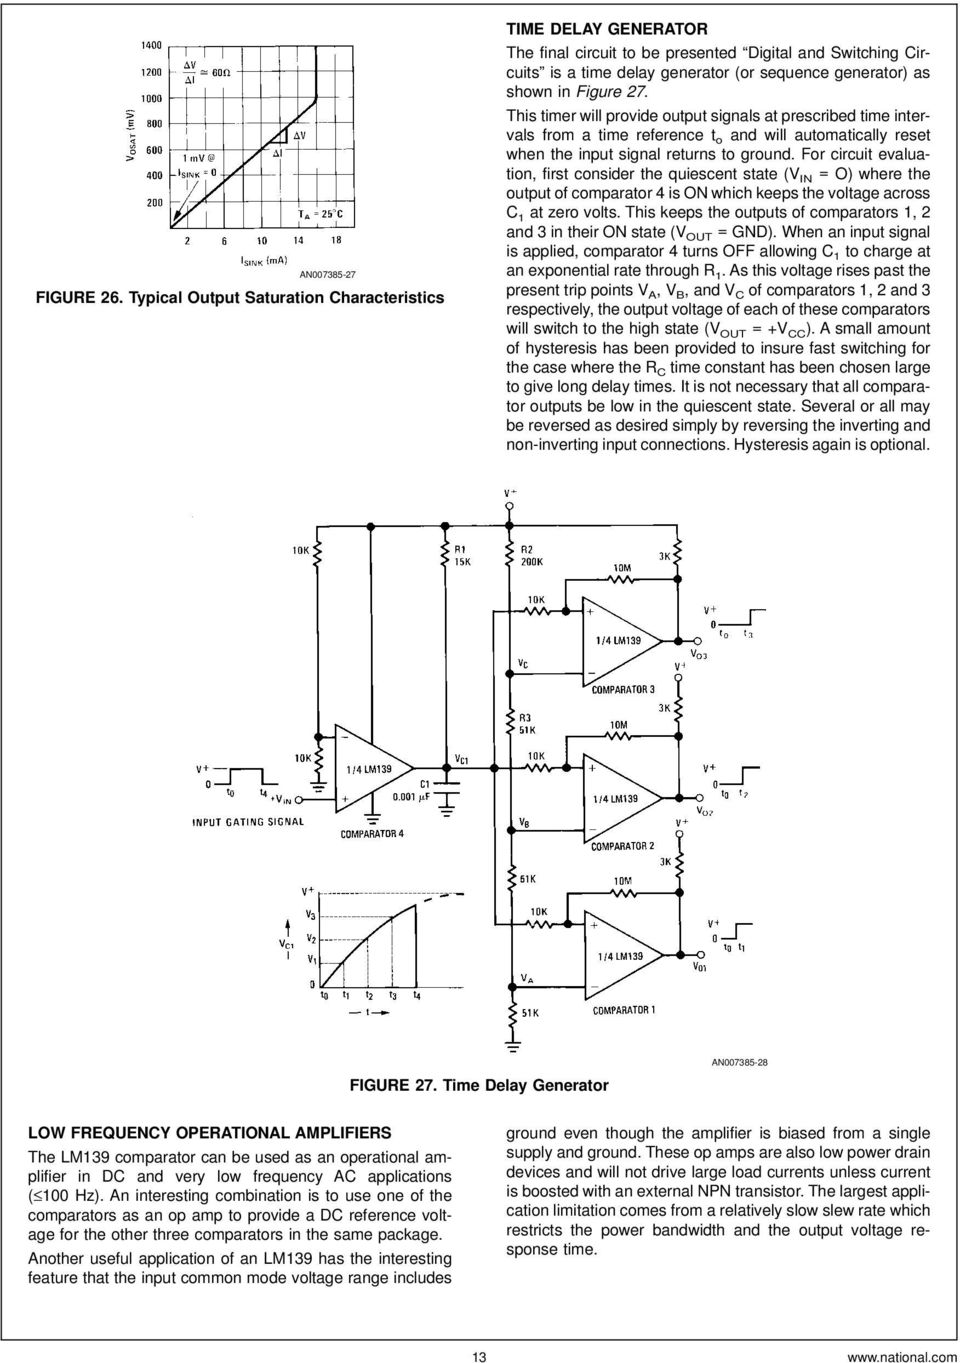 Lm139 Lm239 Lm339 A Quad Of Independently Functioning Comparators Pdf Adding Hysteresis To Comparator Circuit Basiccircuit This Timer Will Provide Output Signals At Prescribed Time Intervals From Reference T O And